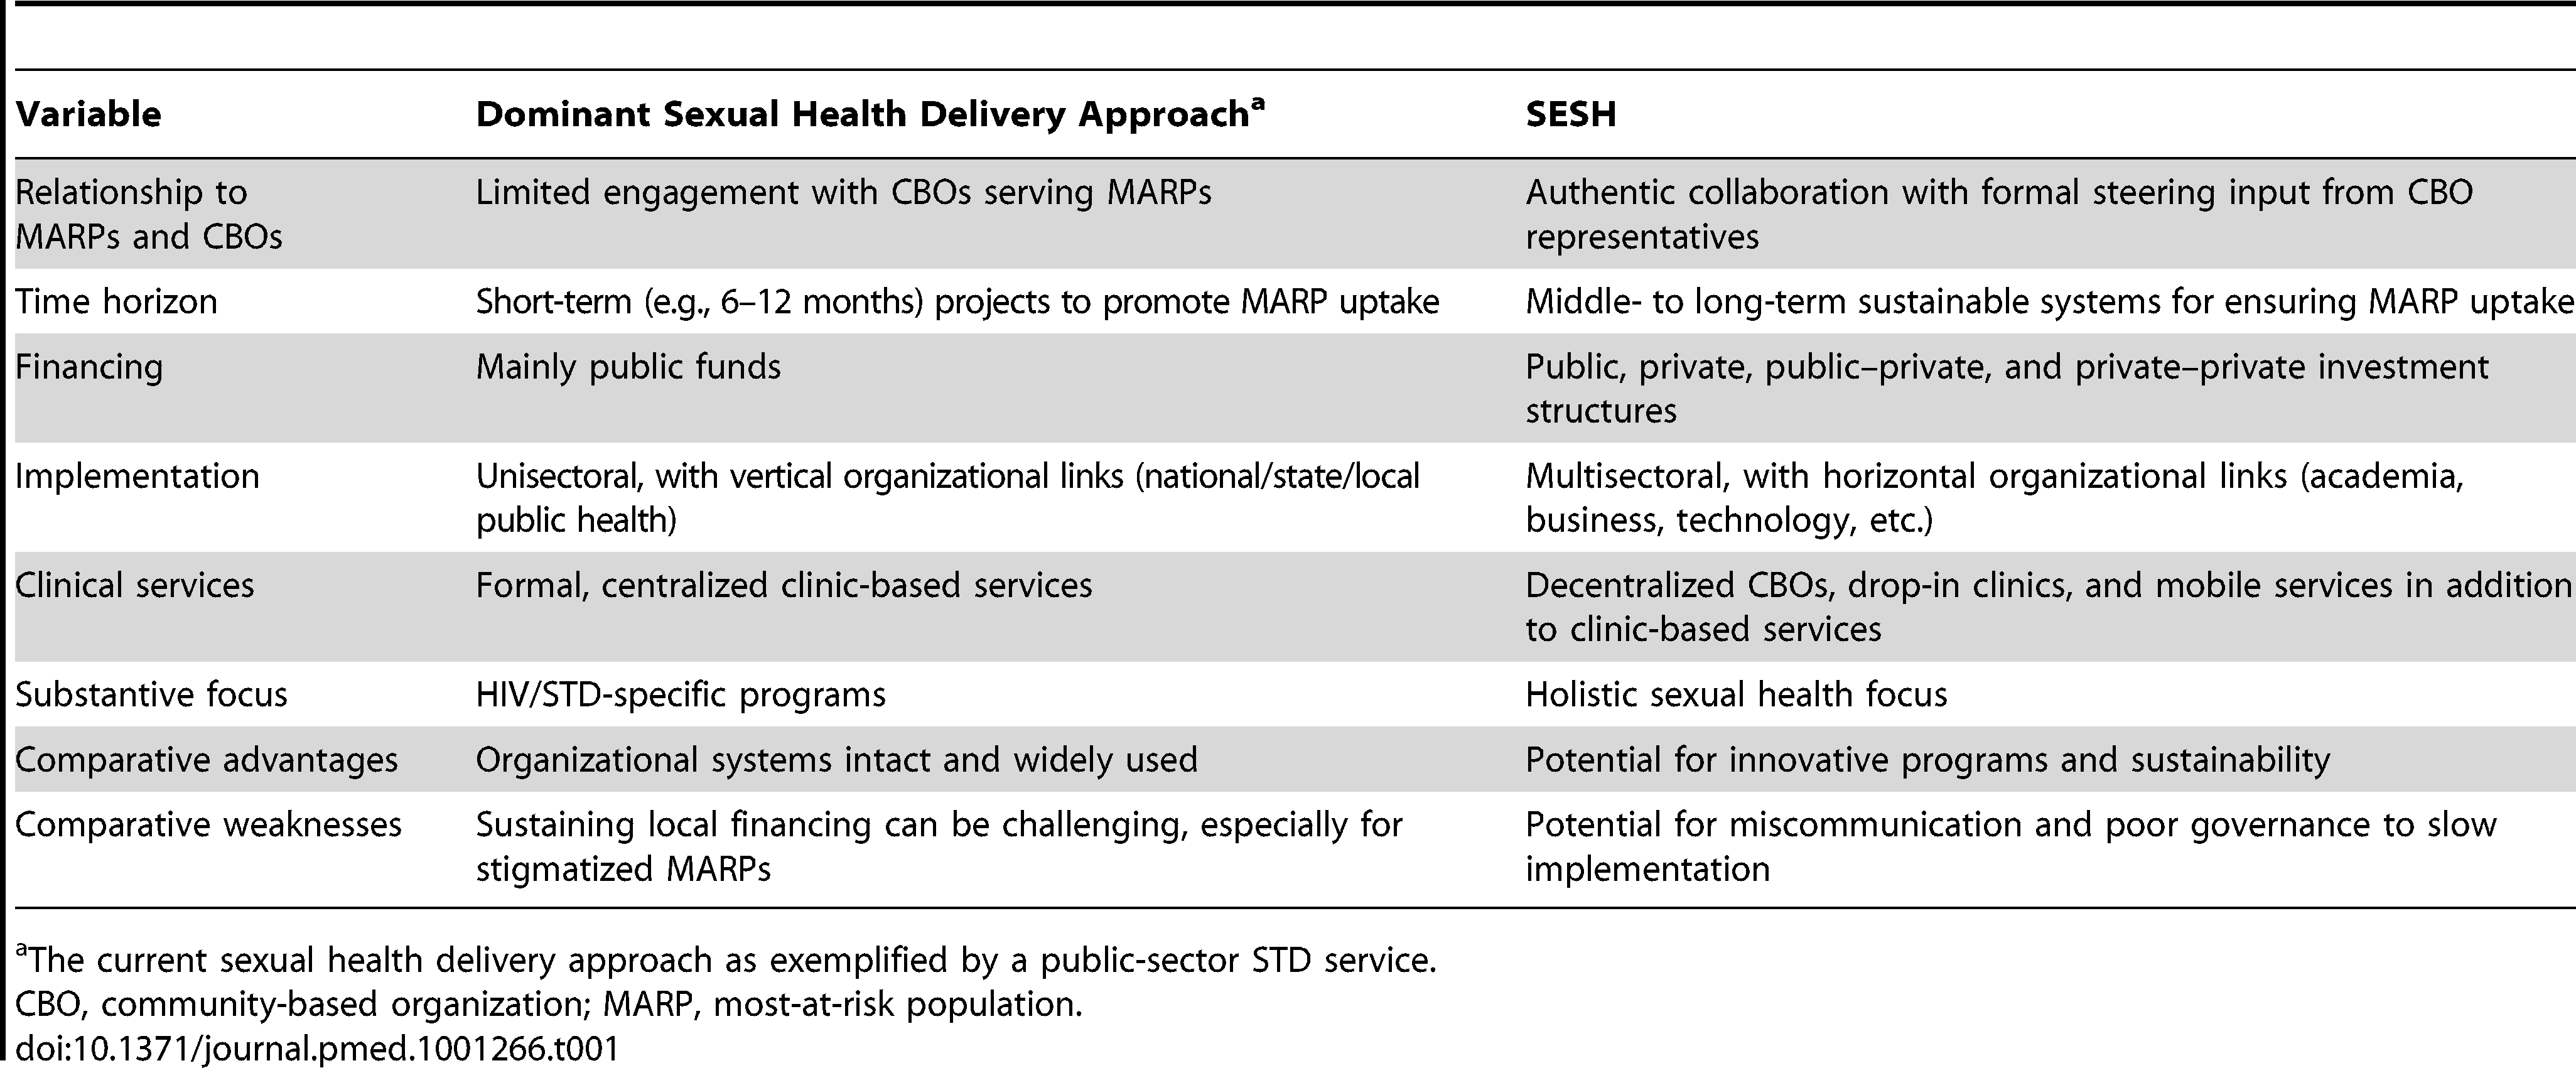 Overview of the dominant current sexual health delivery system and the SESH delivery system.